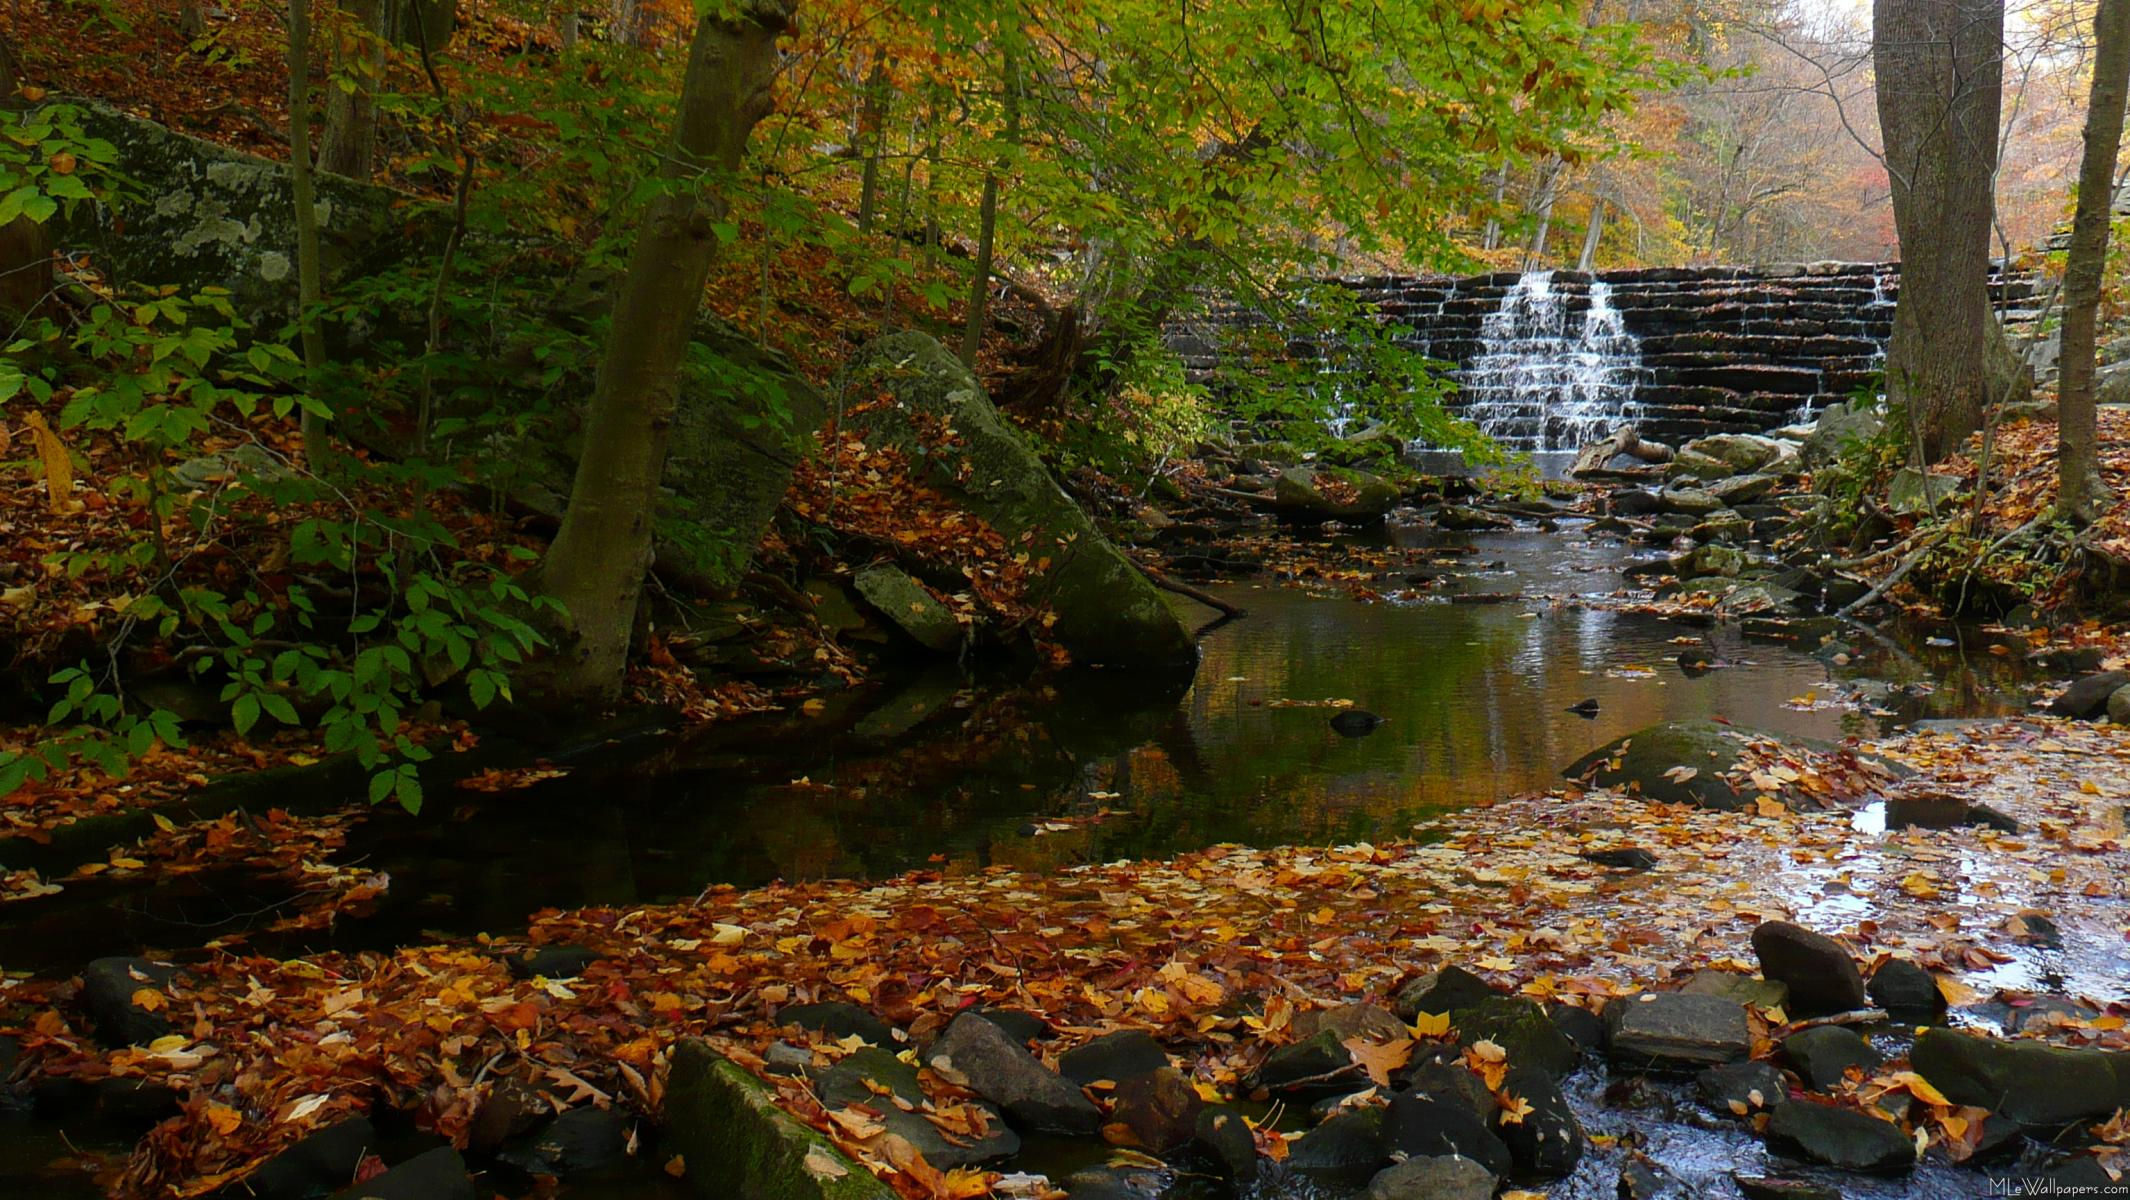 Waterfall on the creek Wallpaper Wallpapers   High resolution 2130x1200